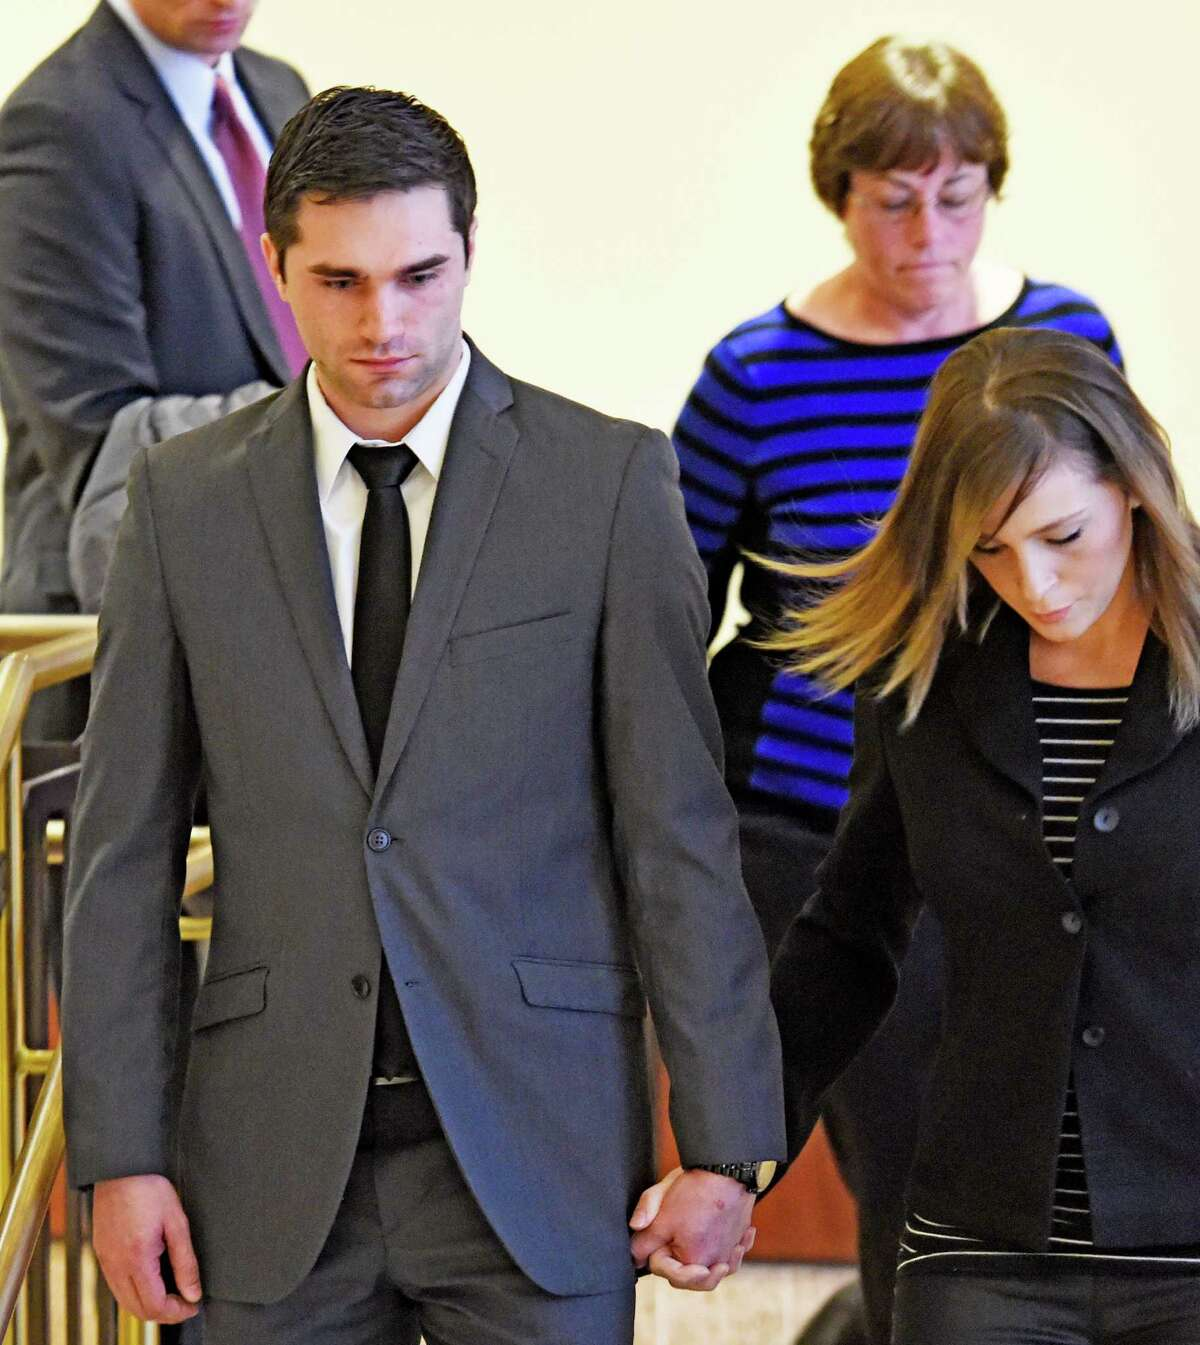 Tyler Pascuzzi of Coxsackie, left, leaves court after his appearance at the Albany Judicial Center on March 28, 2016, in Albany, N.Y. (Skip Dickstein/Times Union archive)